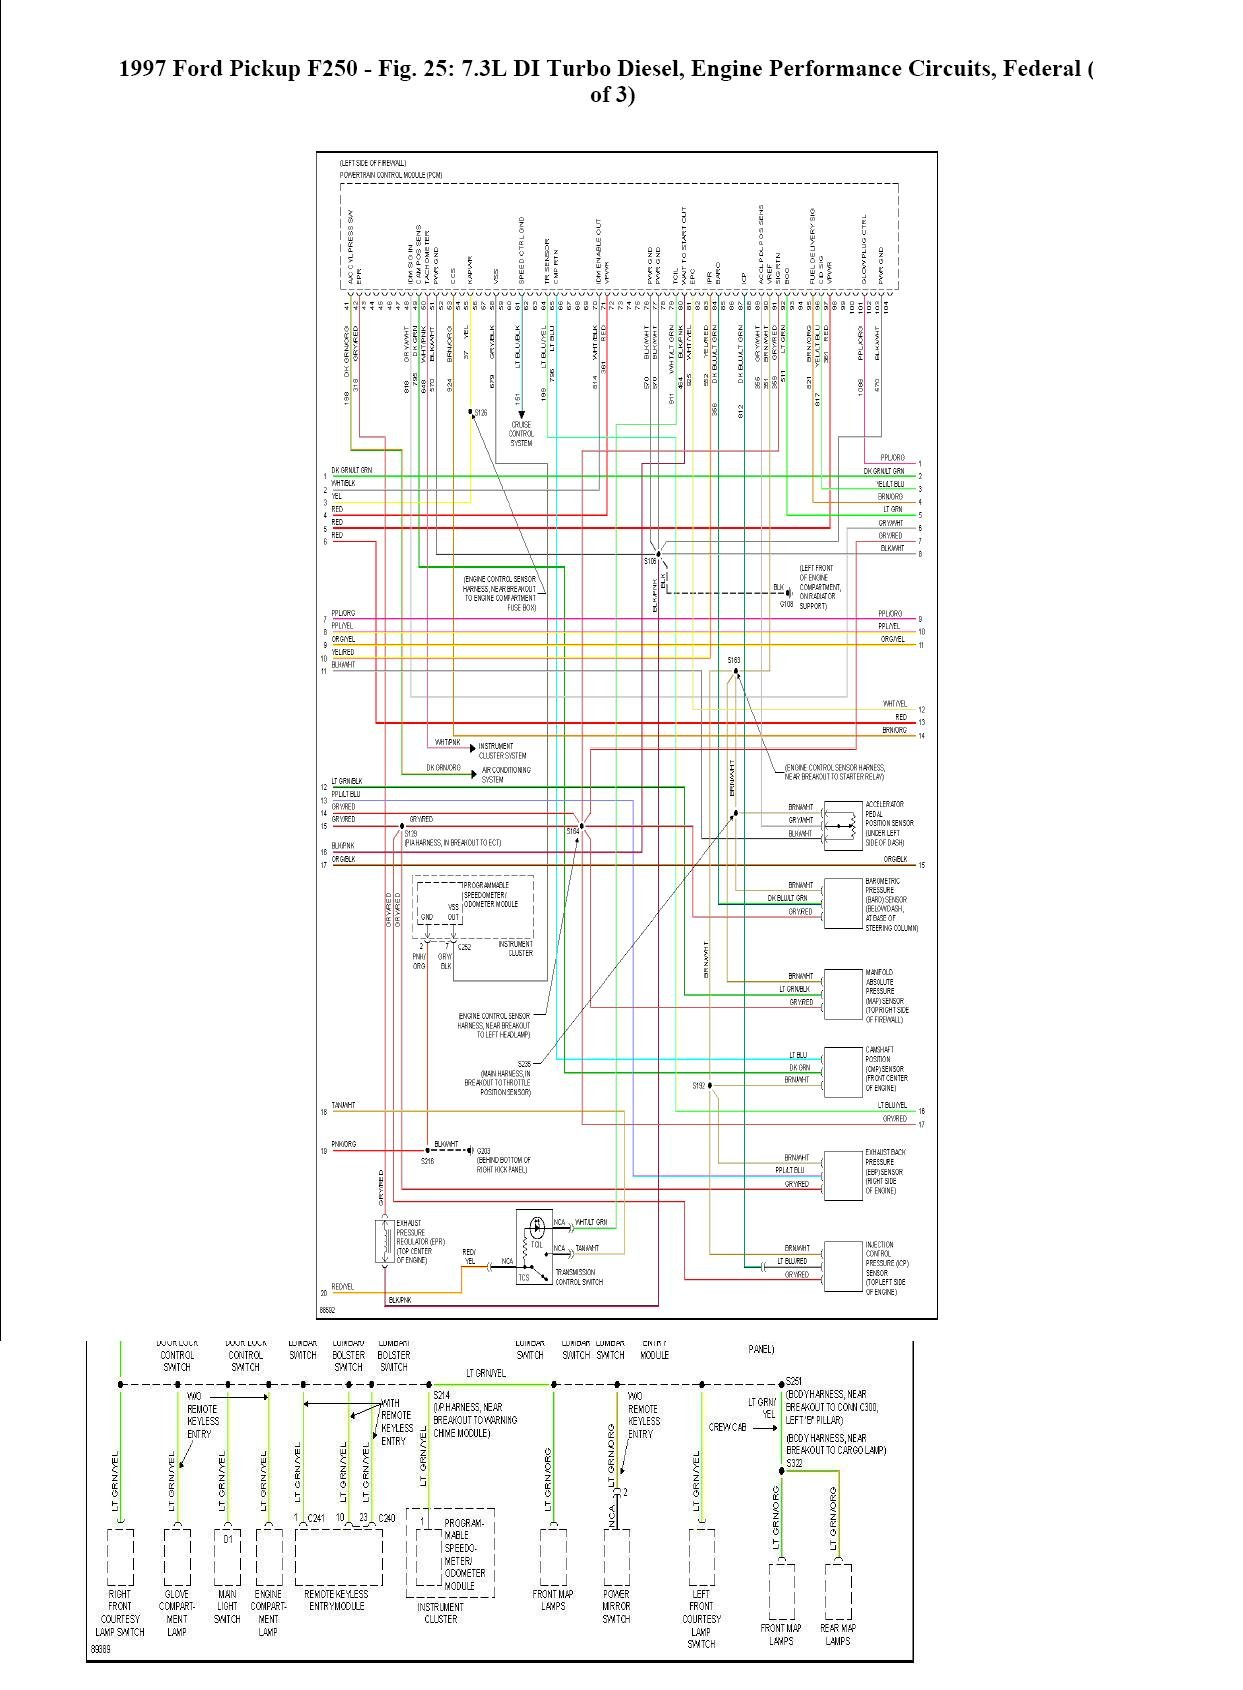 1997 f250 7 3 fuse diagram data wiring diagram schematic 1994 Ford F-350 7.3L Turbo Diesel Engine Diagram 1997 powerstroke engine diagram wiring diagrams click f250 fuse box diagram 1997 f250 7 3 fuse diagram